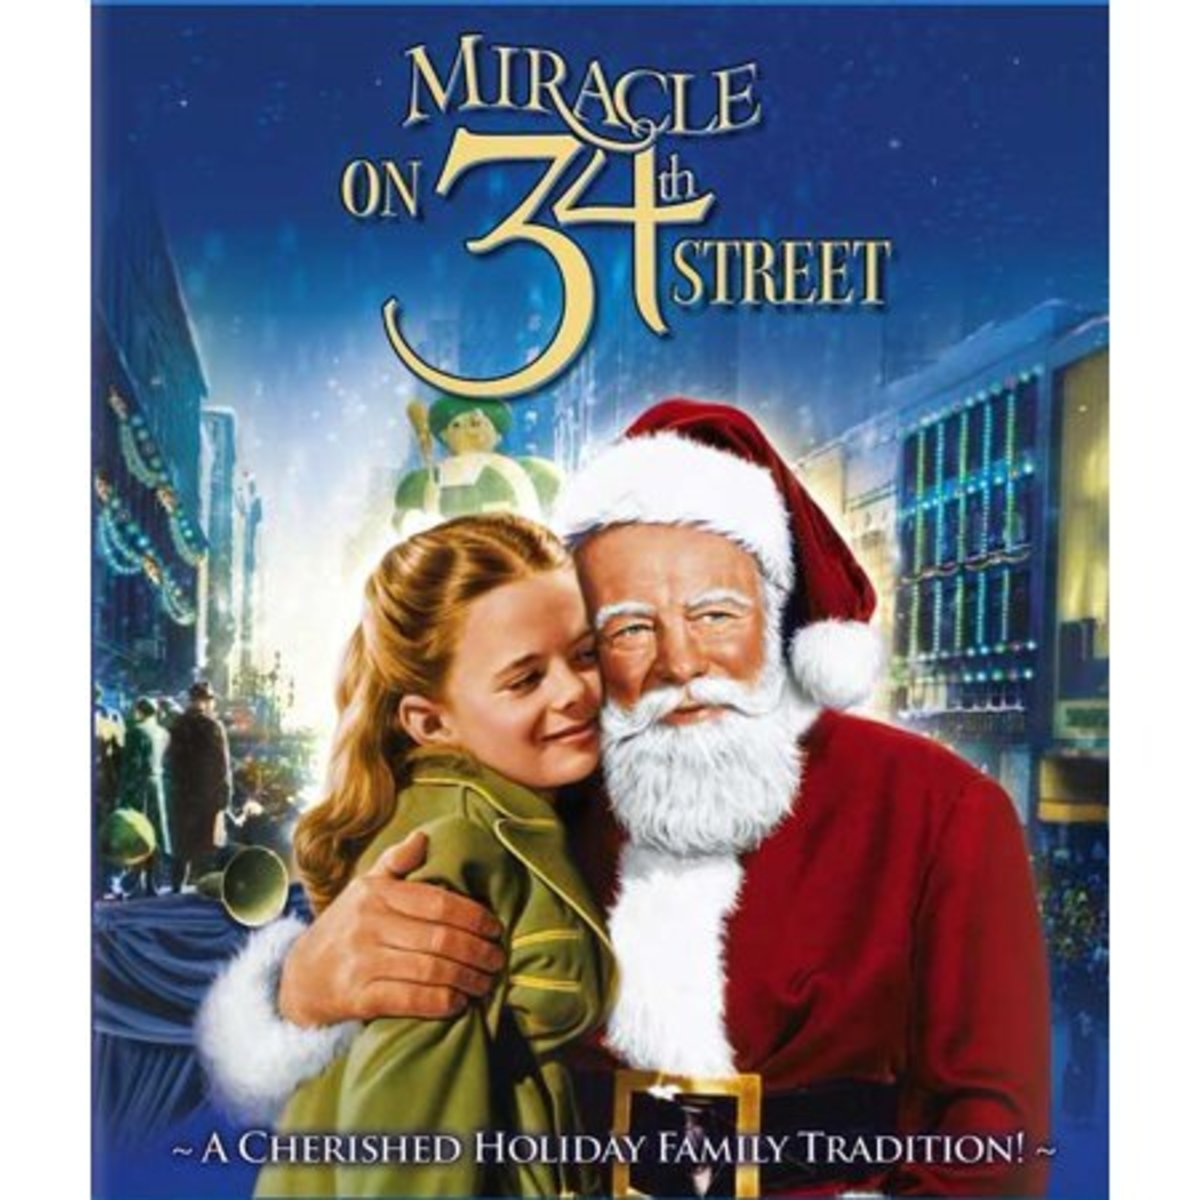 Miracle On 34th Street 1947 Will Make You Believe In